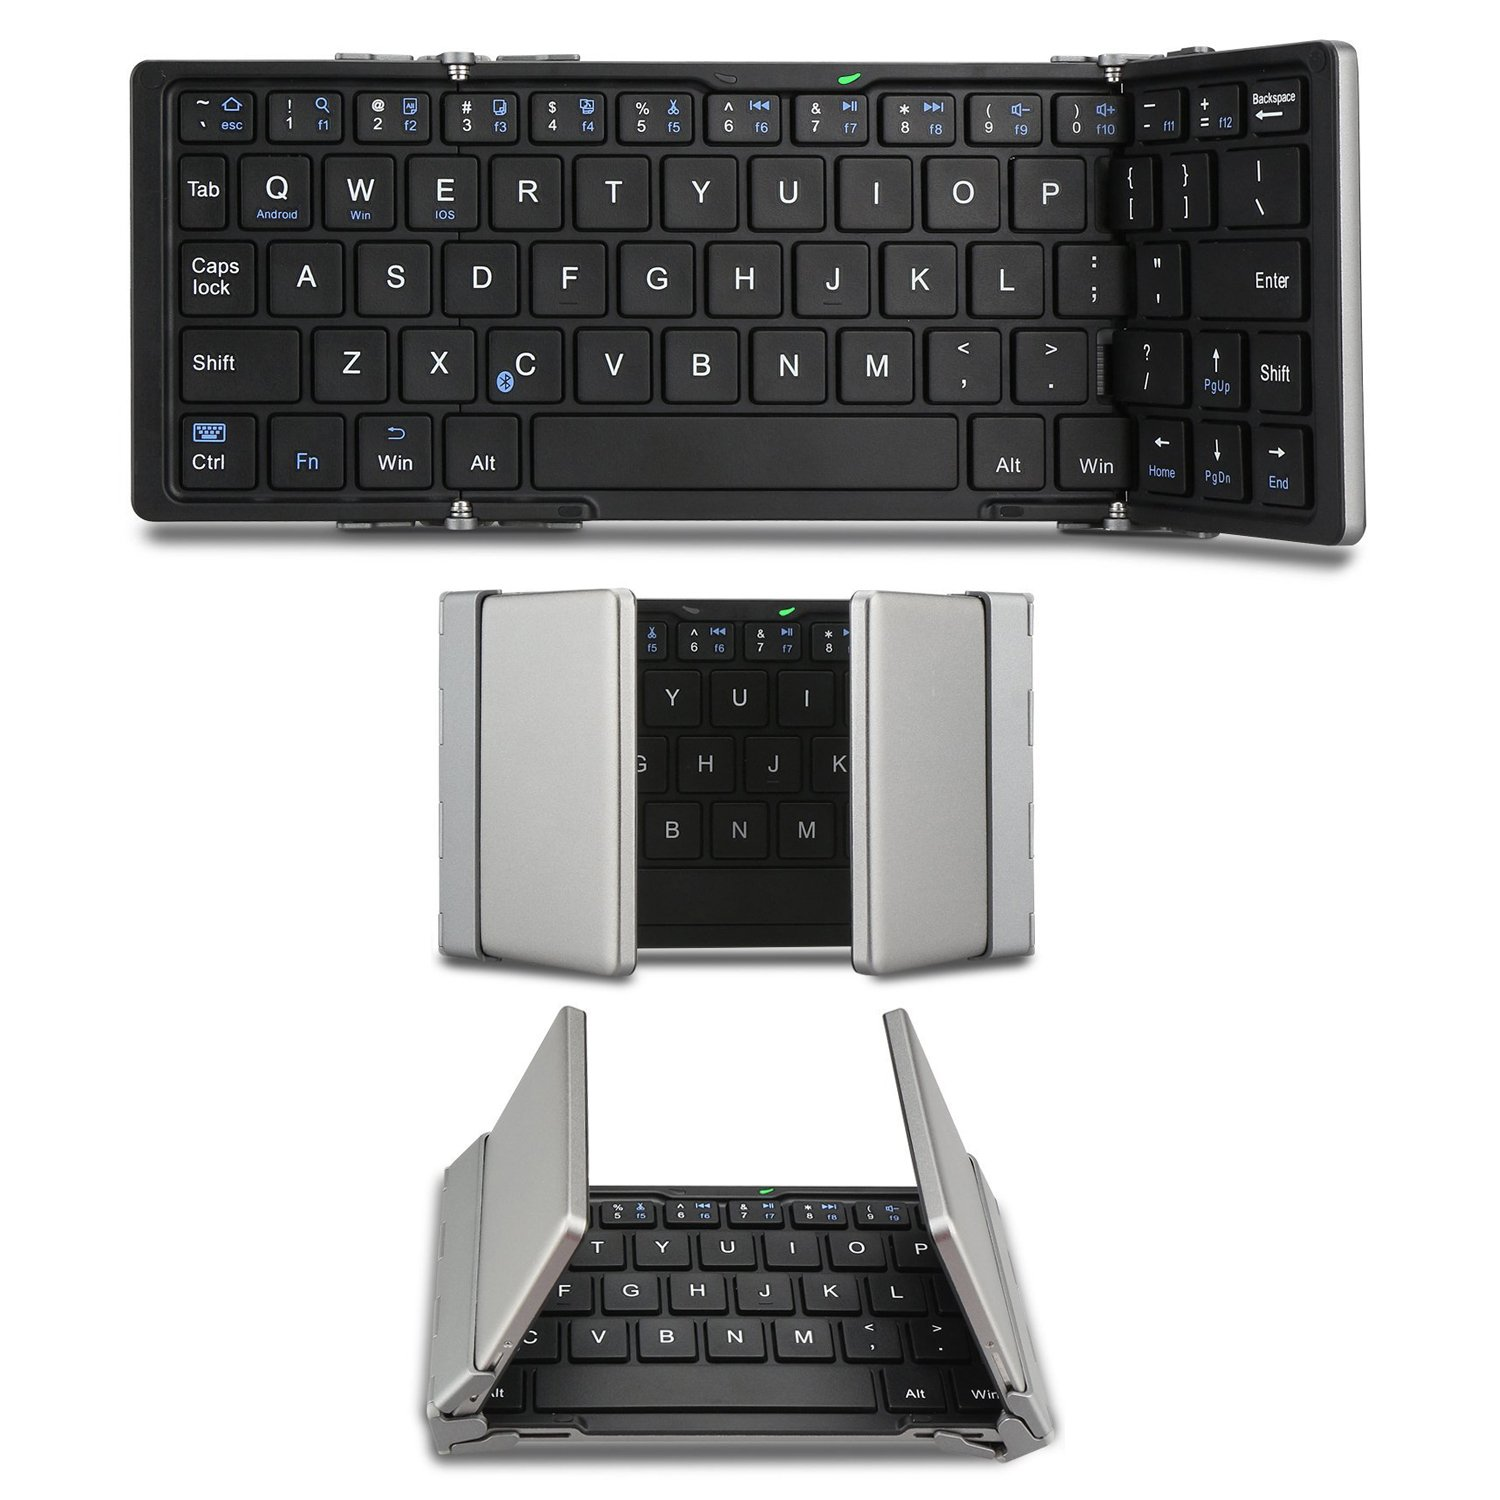 ... keyboard with foldable keyboard users can enjoy creating and